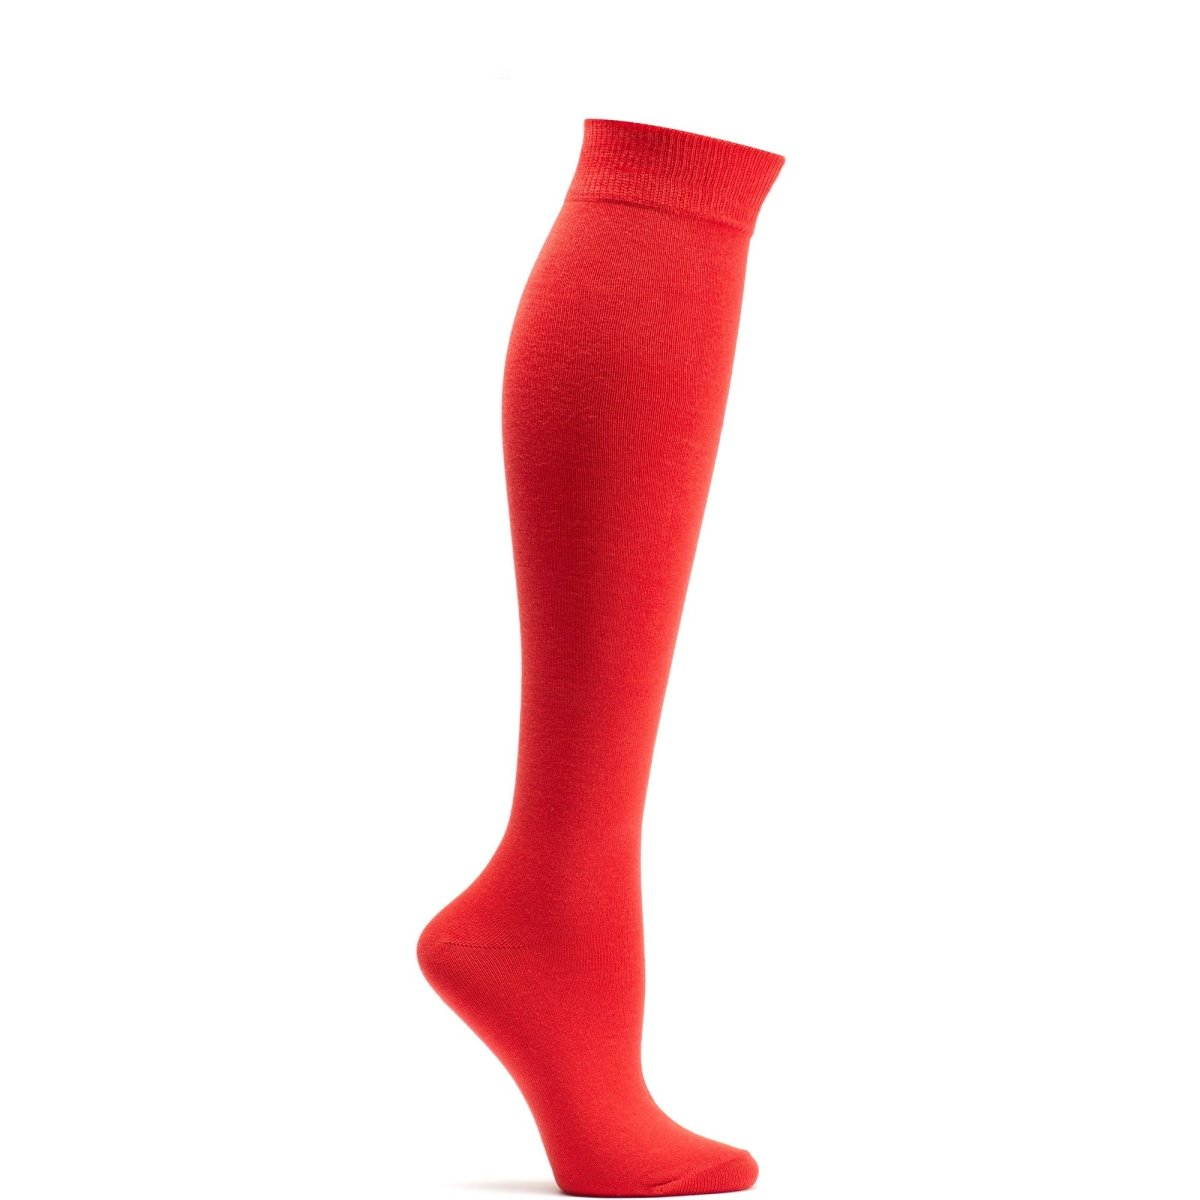 Pima Cotton High Zone Sock - Ozone Design Inc